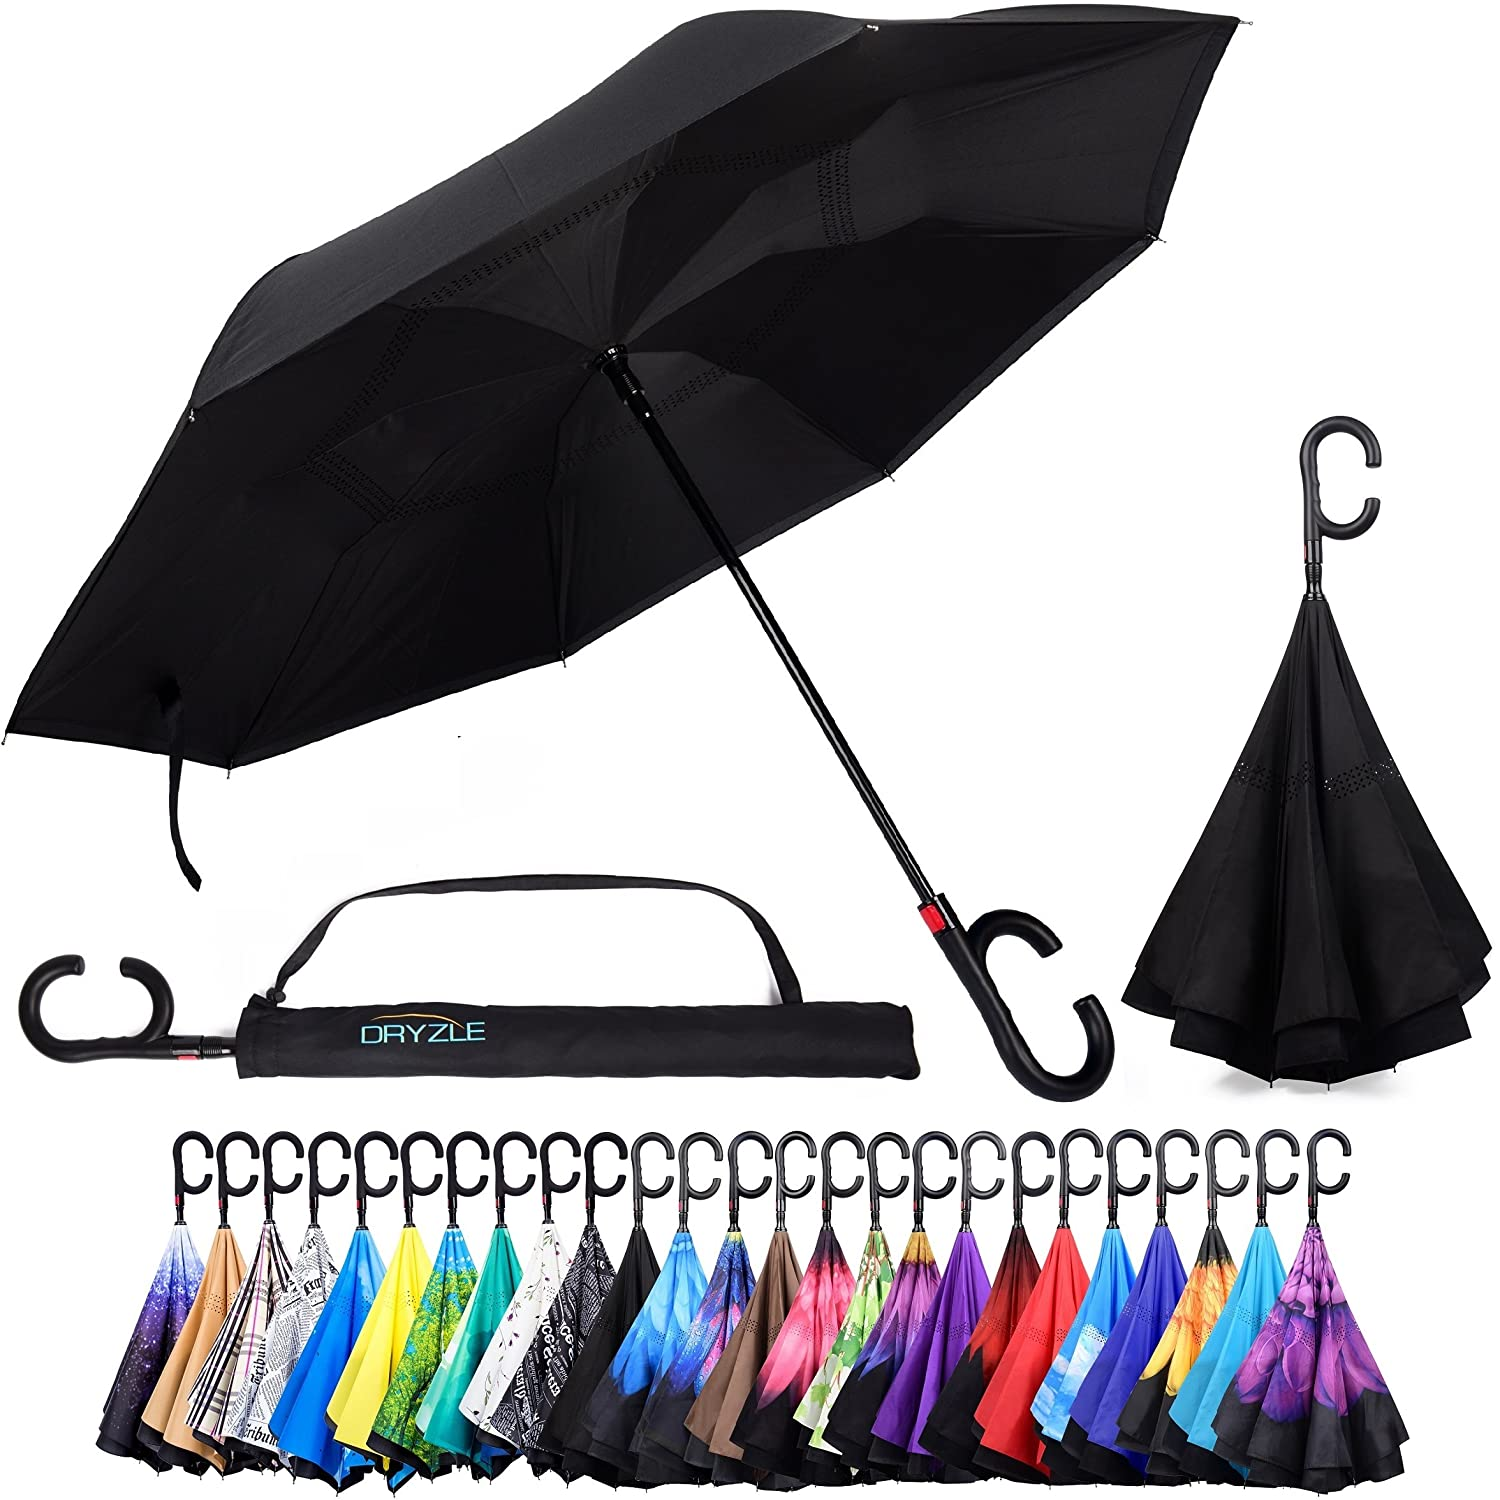 690eb2b53d48a Reverse Inverted Inside Out Umbrella - Upside Down UV Protection Unique  Windproof Brella That Open Better Than Most Umbrellas, Reversible Folding  ...